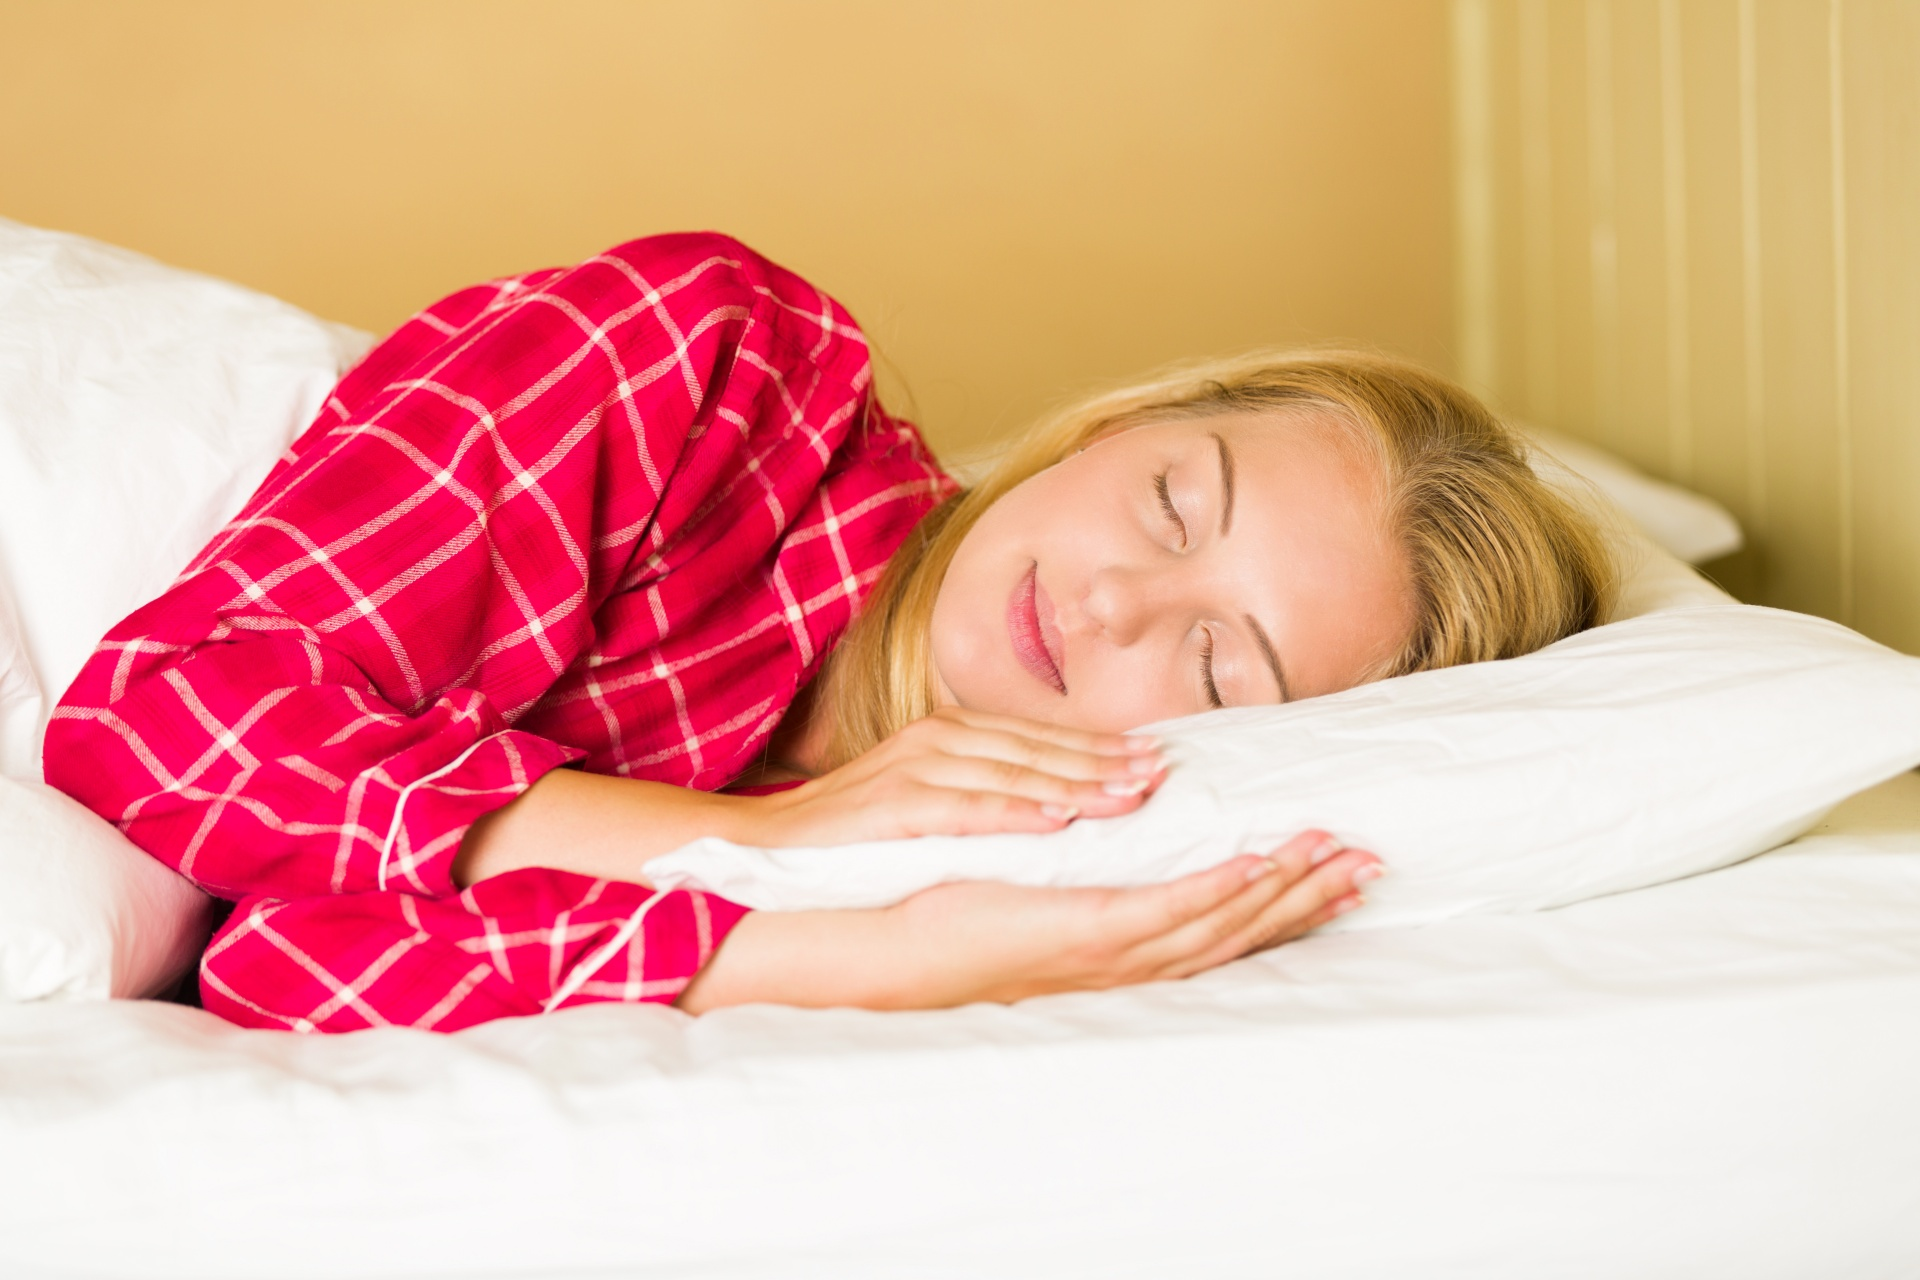 A blonde woman in red pajamas sleeps on a bed, which is a big part of learning how to sleep well.